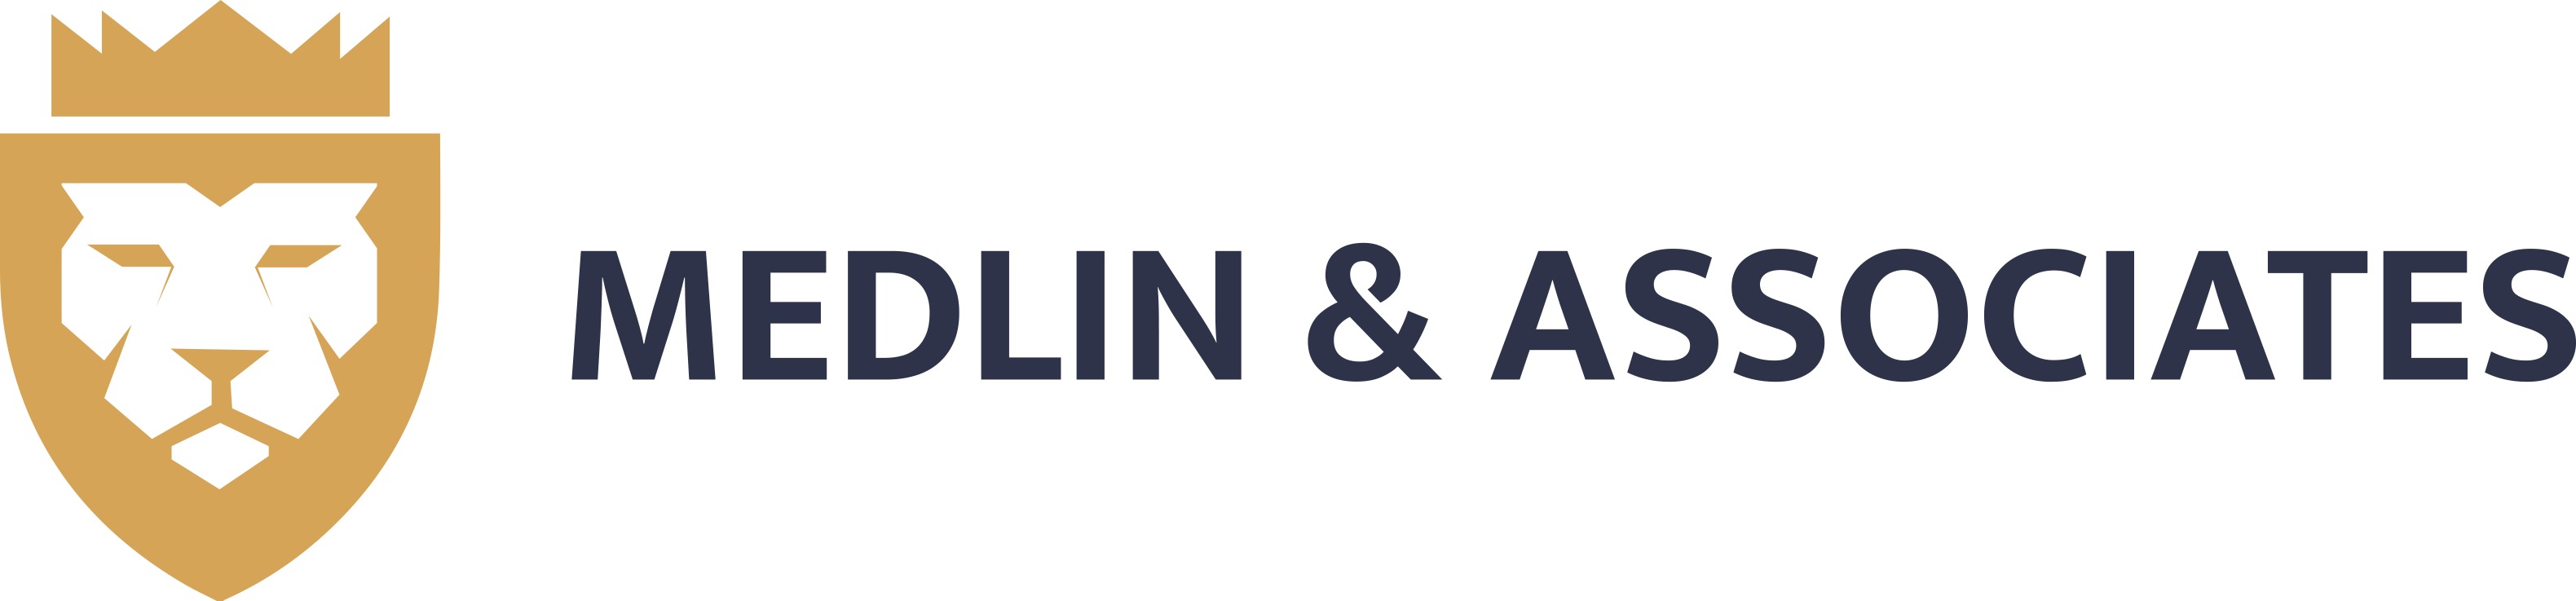 Does My Small Business Need Commercial Insurance? 1 Medlin & Associates is an exclusive insurance agency serving the Dallas,  Denton and all of our Texas family.  We offer customized insurance options for personal,  commercial or life insurance. medlin-insurance